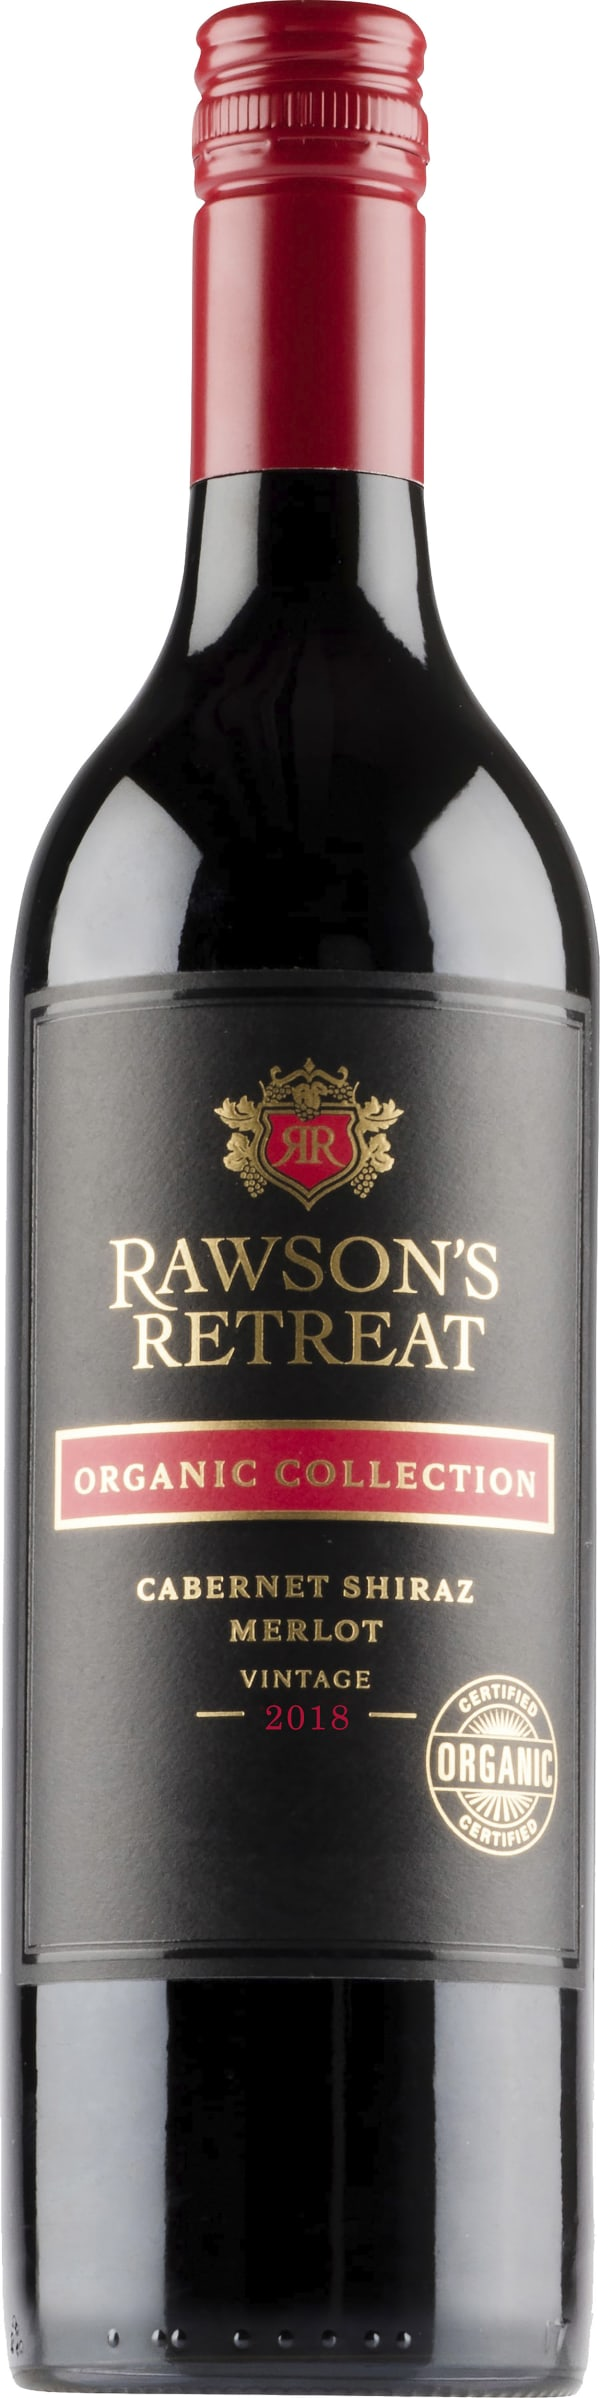 Rawson's Retreat Organic Collection Cabernet Shiraz Merlot 2018